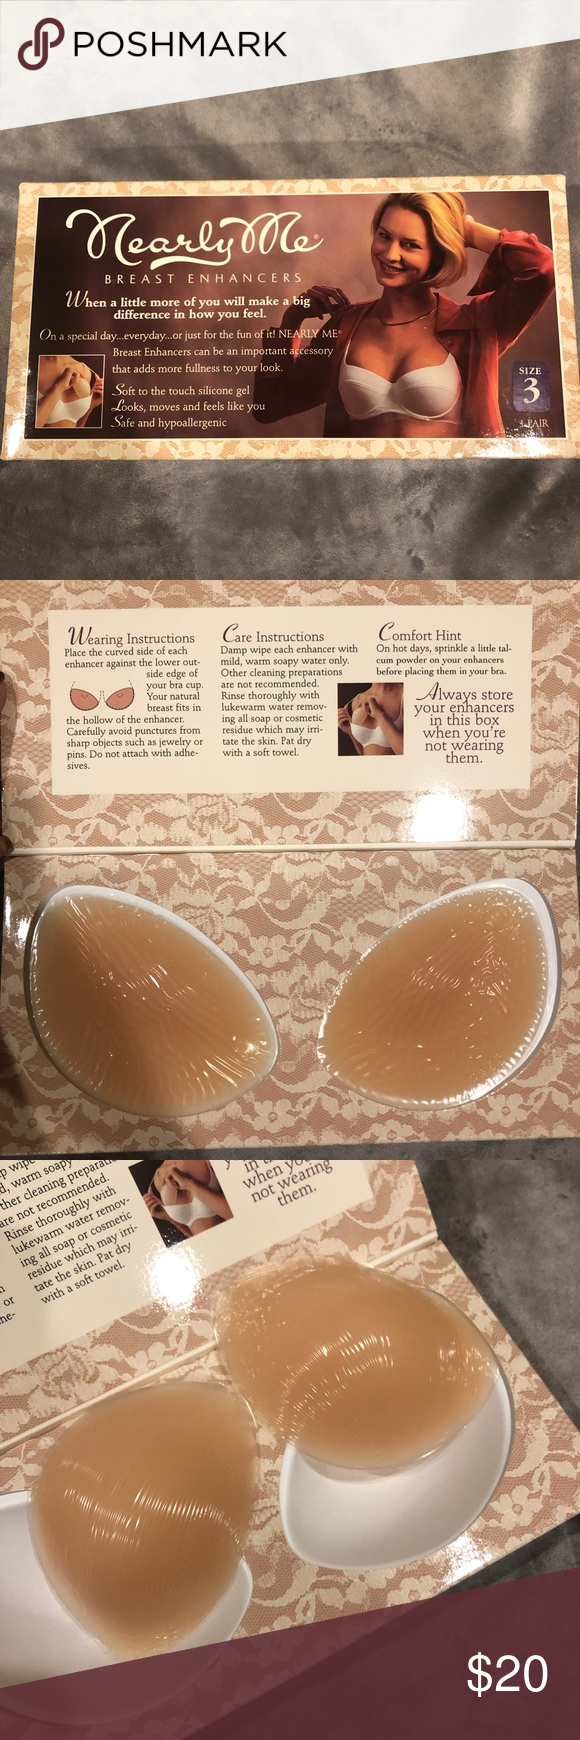 44dce3213d037 See pictures for more detailed description from manufacturer. Nearly Me  Intimates   Sleepwear Bras. Silicon Breast Enhancers ...